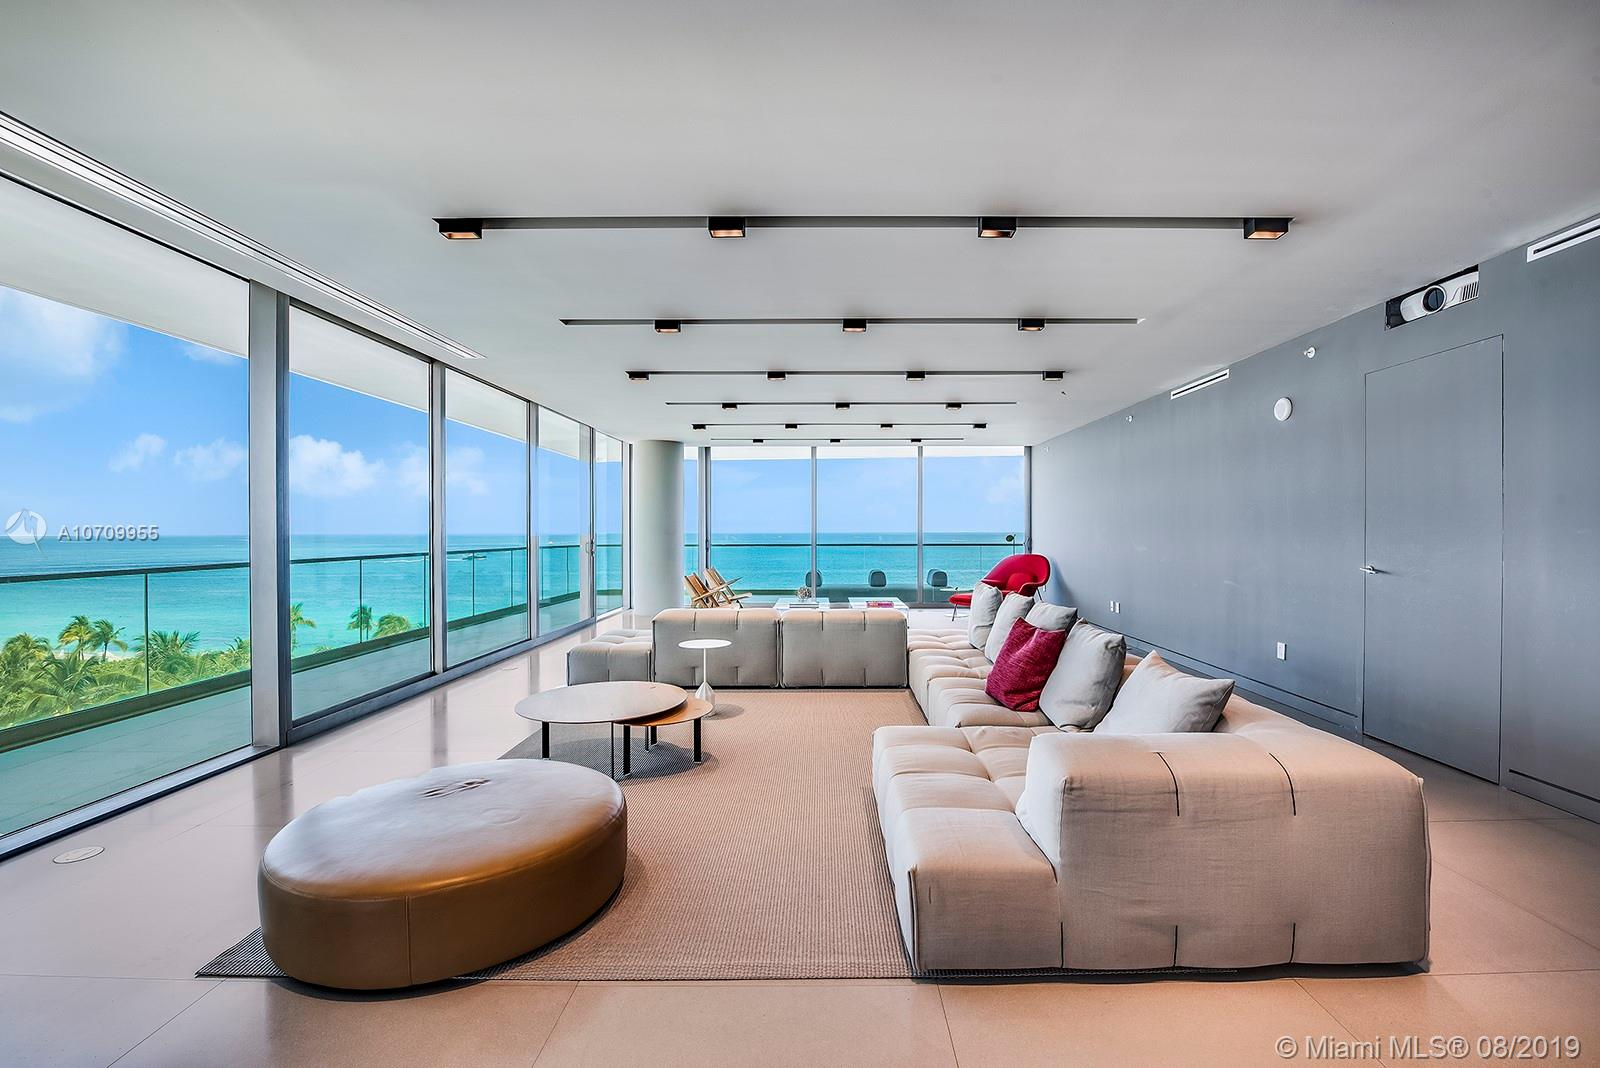 Turn-key direct Oceanfront corner residence at the exclusive Oceana Bal Harbour features expansive wrap around terrace with sunrise & sunset views. Master bedroom faces the ocean with his/her walk-in closets and large master bath. Dada gourmet kitchen with large calacatta gold island and gaggenau appliances. Separate breakfast area and staff quarters. No expense was spared to finish this gorgeous apt; dropped ceilings, full home automation & custom millwork. Super luxurious and full service building with lavish amenities including private restaurant, tennis court, full spa, state of the art fitness center, concierge, oversized pools, cabanas and more. Includes 3 valet parking spaces. walking distance to Bal Harbour shoppes and fine restaurants